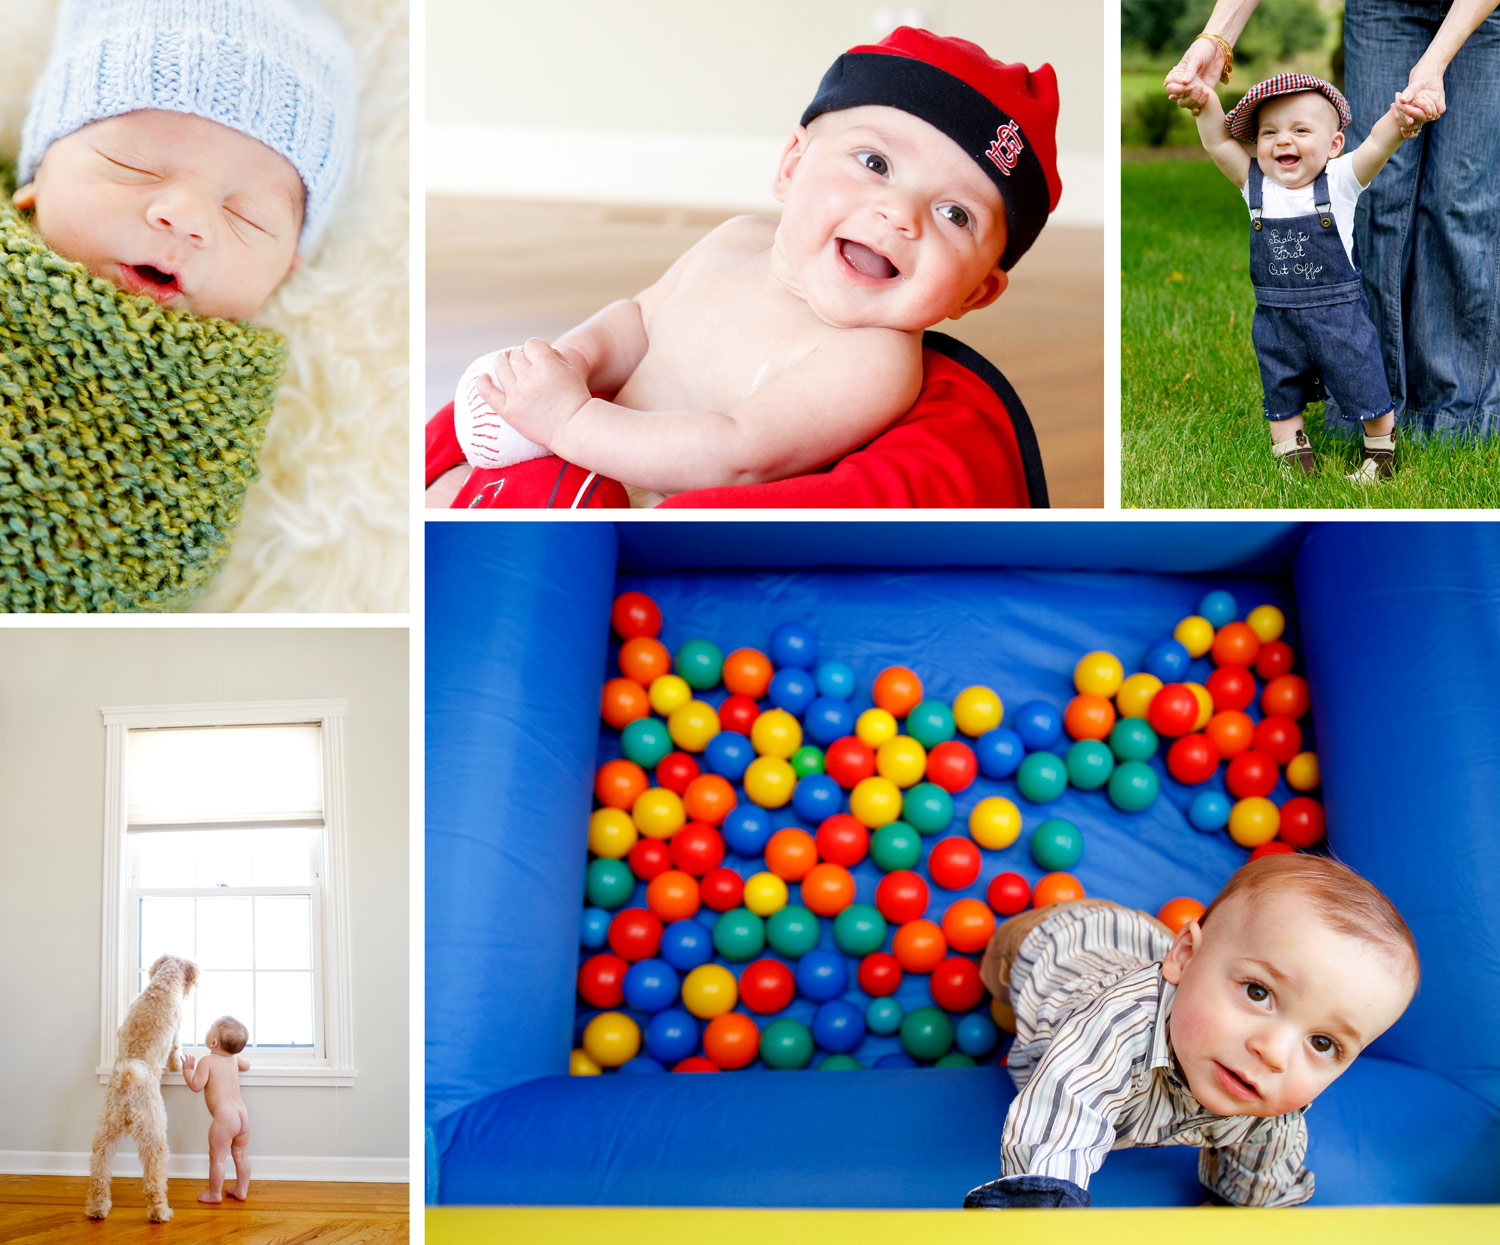 baby-portraits-lifestyle-candid-year-one-ruthie-hauge-photography-naperville-geneva-st-charles-fox-valley-kane-batavia.jpg